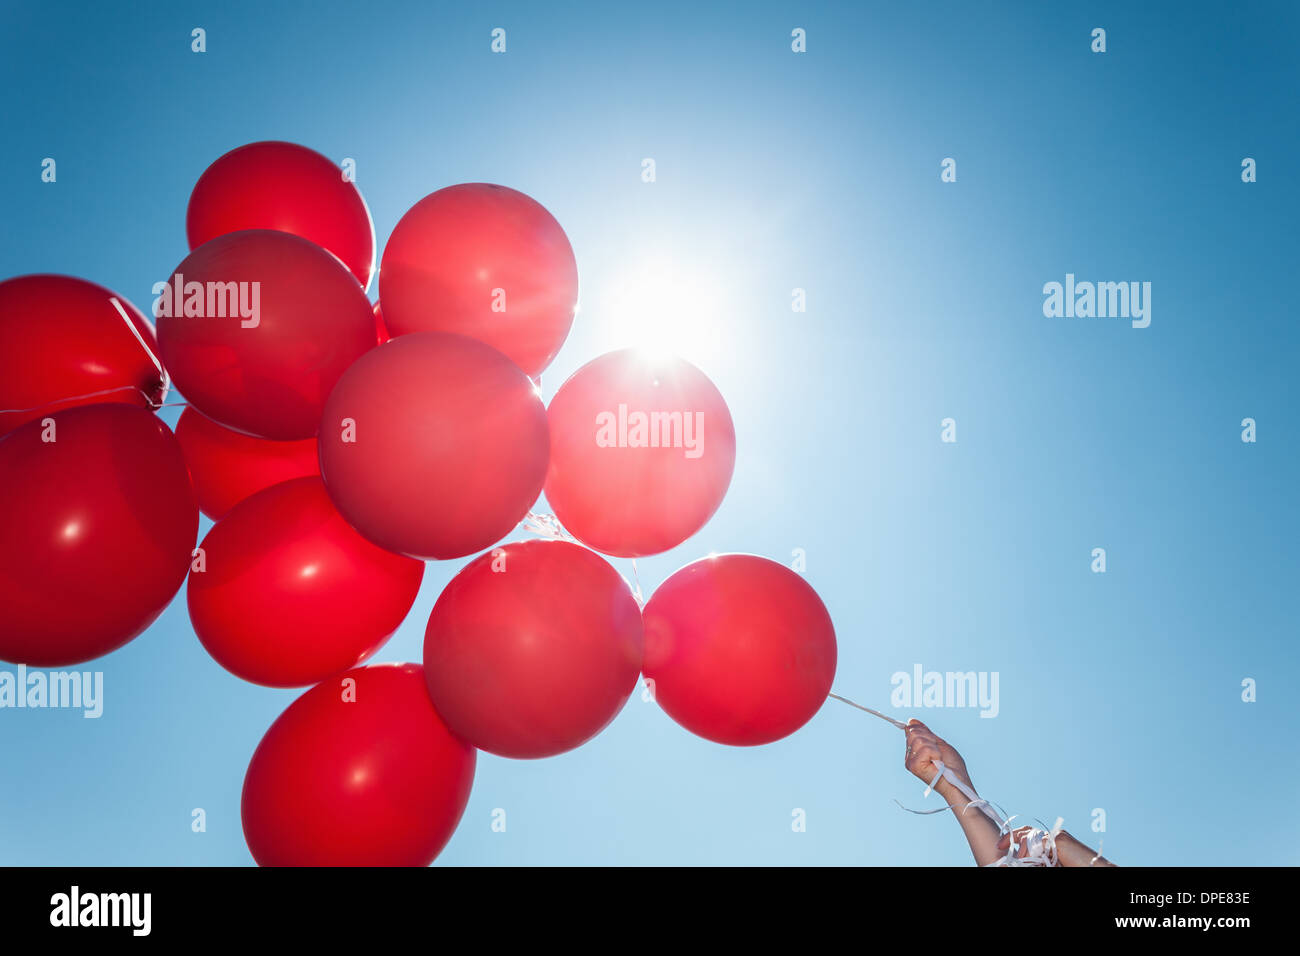 Hands holding bunch of red balloons against blue sky - Stock Image